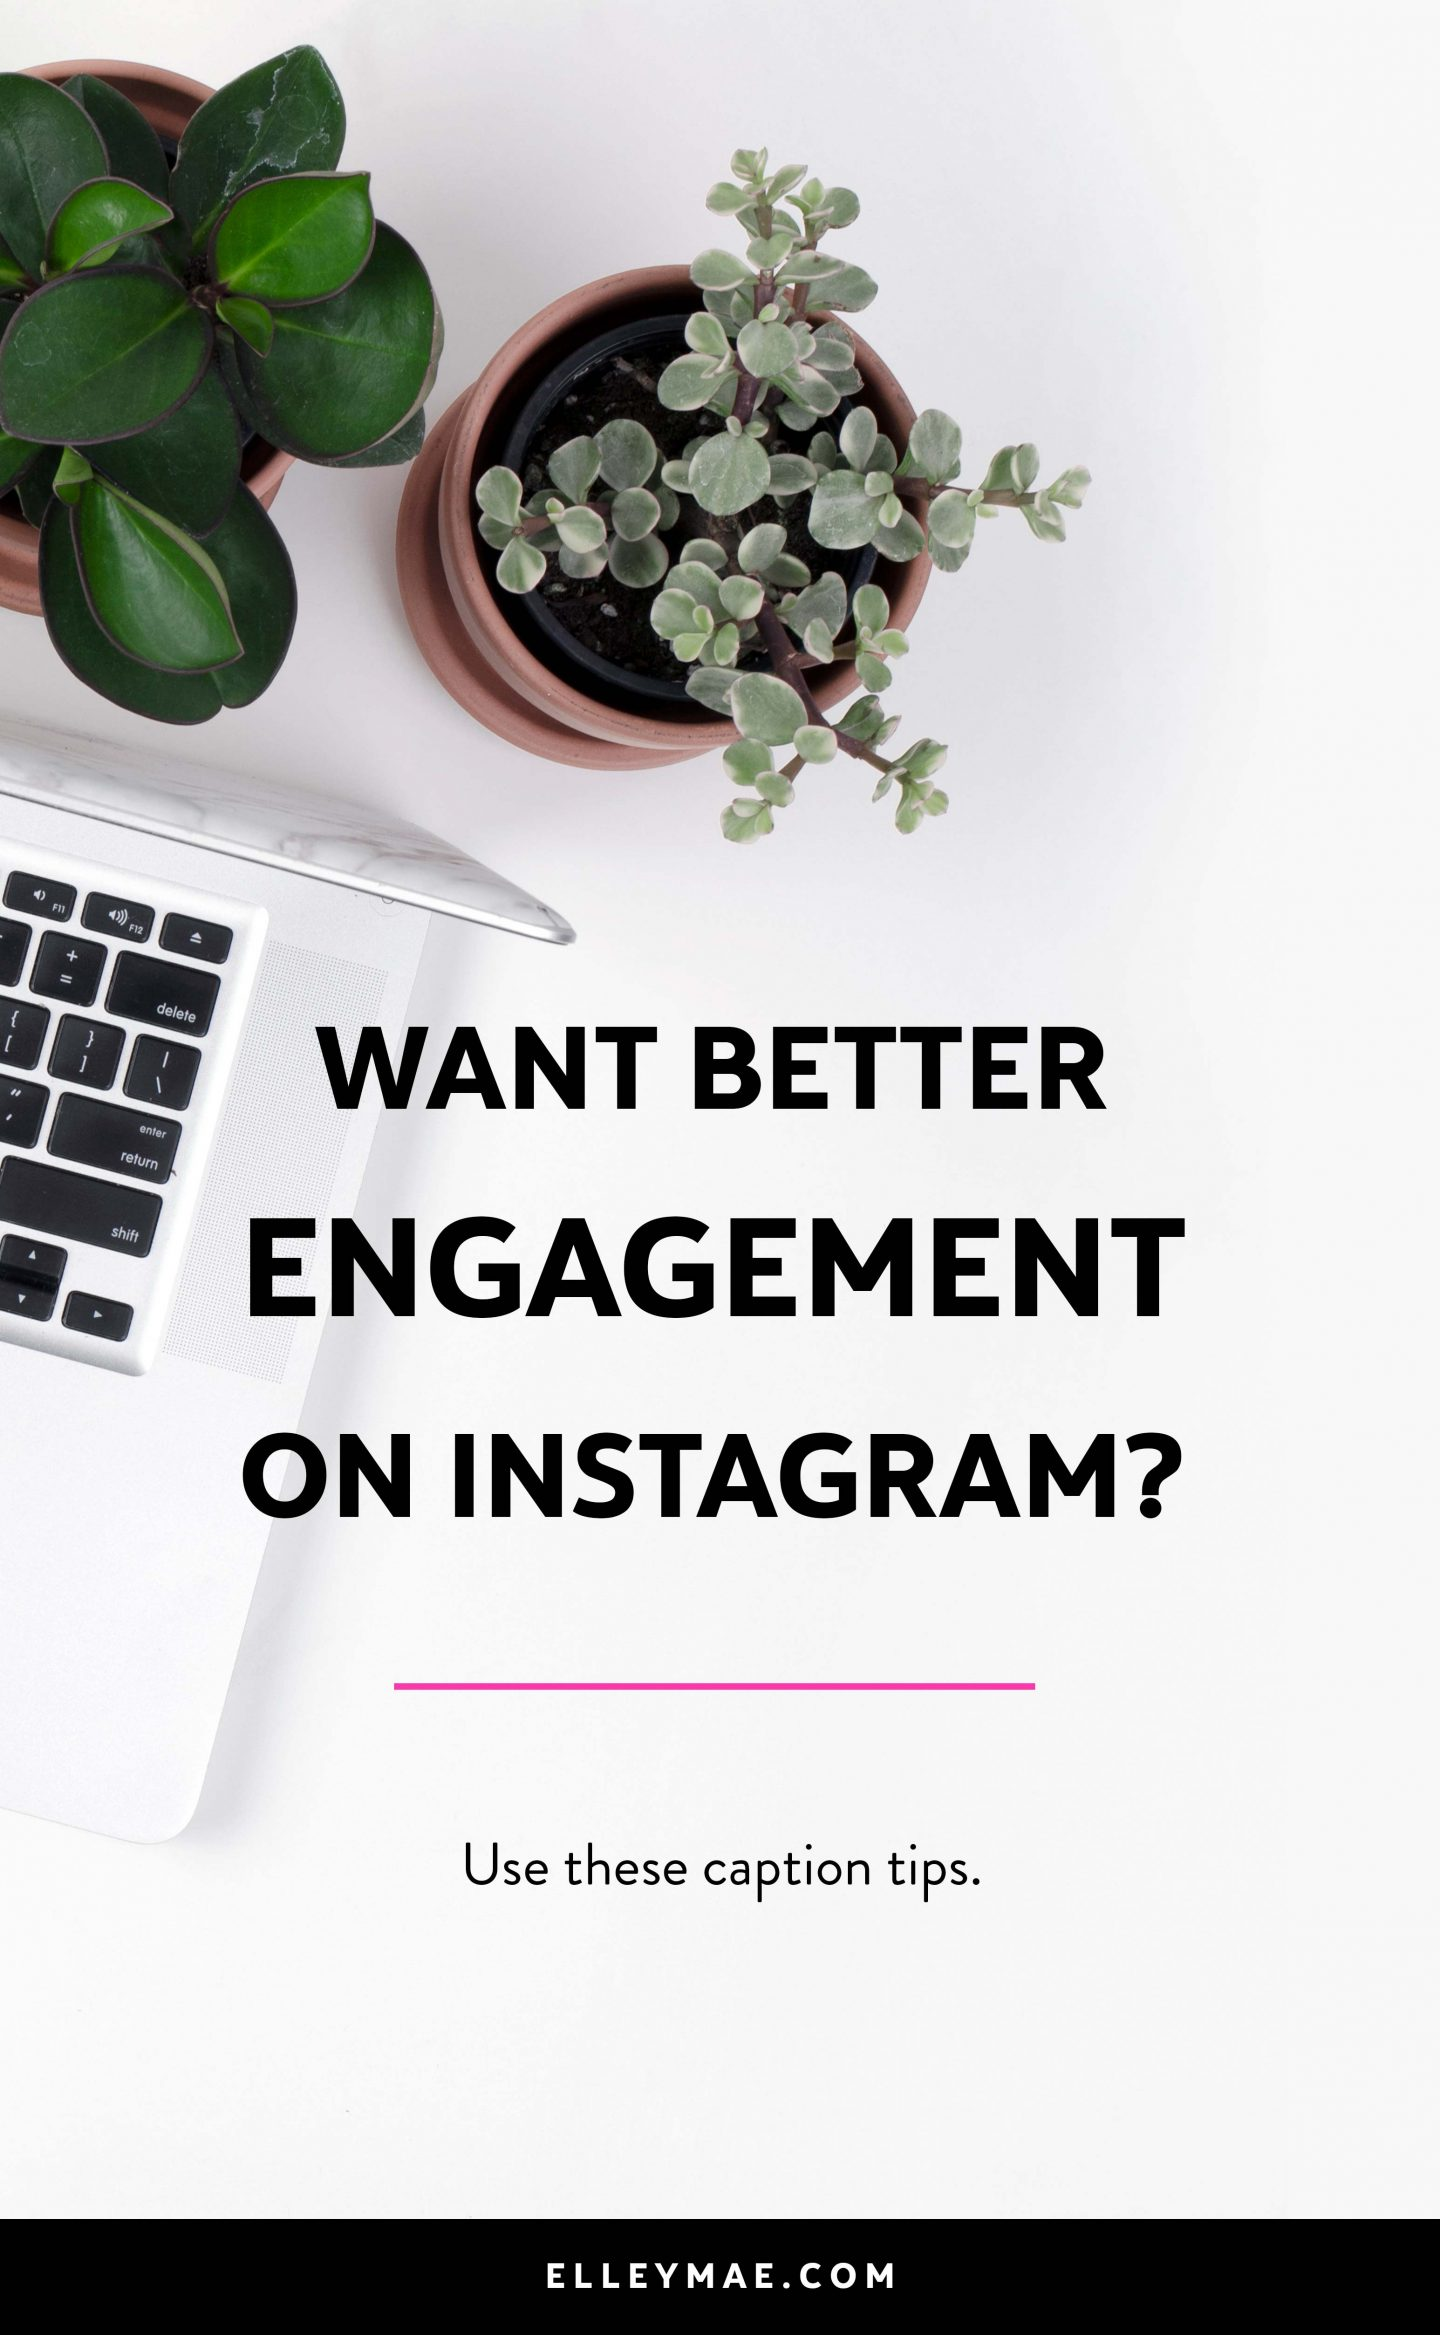 Are your Instagram captions killing your engagement? I have bad news for you #bossbabe, the chances are, you're doing it all wrong with your Instagram captions. Uh oh! Let's fix it! With my 3-step-formula, you can getting better Instagram engagement, gain followers FAST & grow a loyal tribe! How does that sound? Crazy amazing huh?! Let's dive in | Learn More at ElleyMae.com